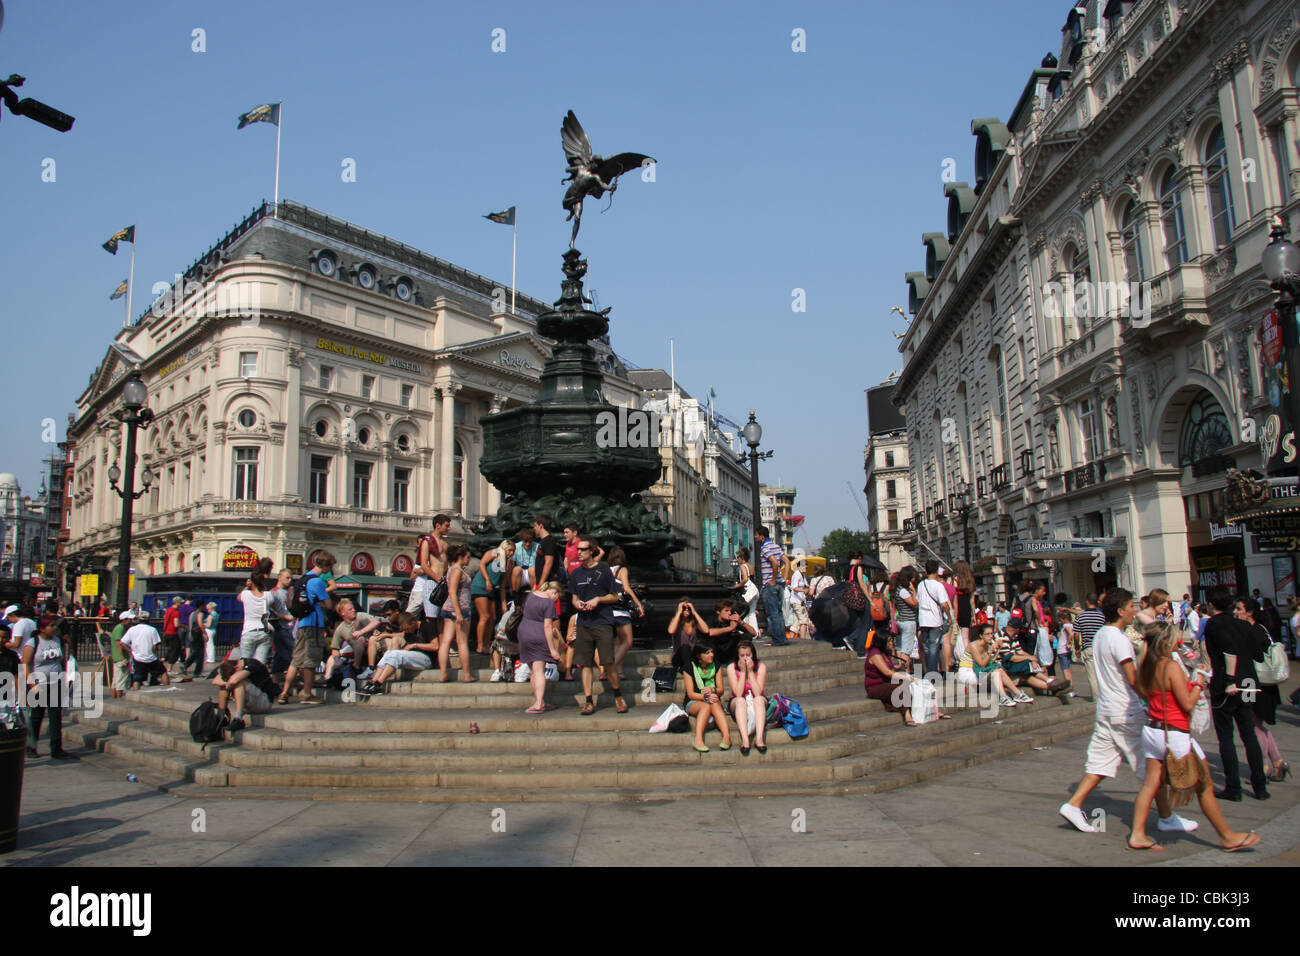 Piccadilly Circus looking northeast at the Shaftesbury memorial fountain and statue of an archer (Anteros); crowded - Stock Image